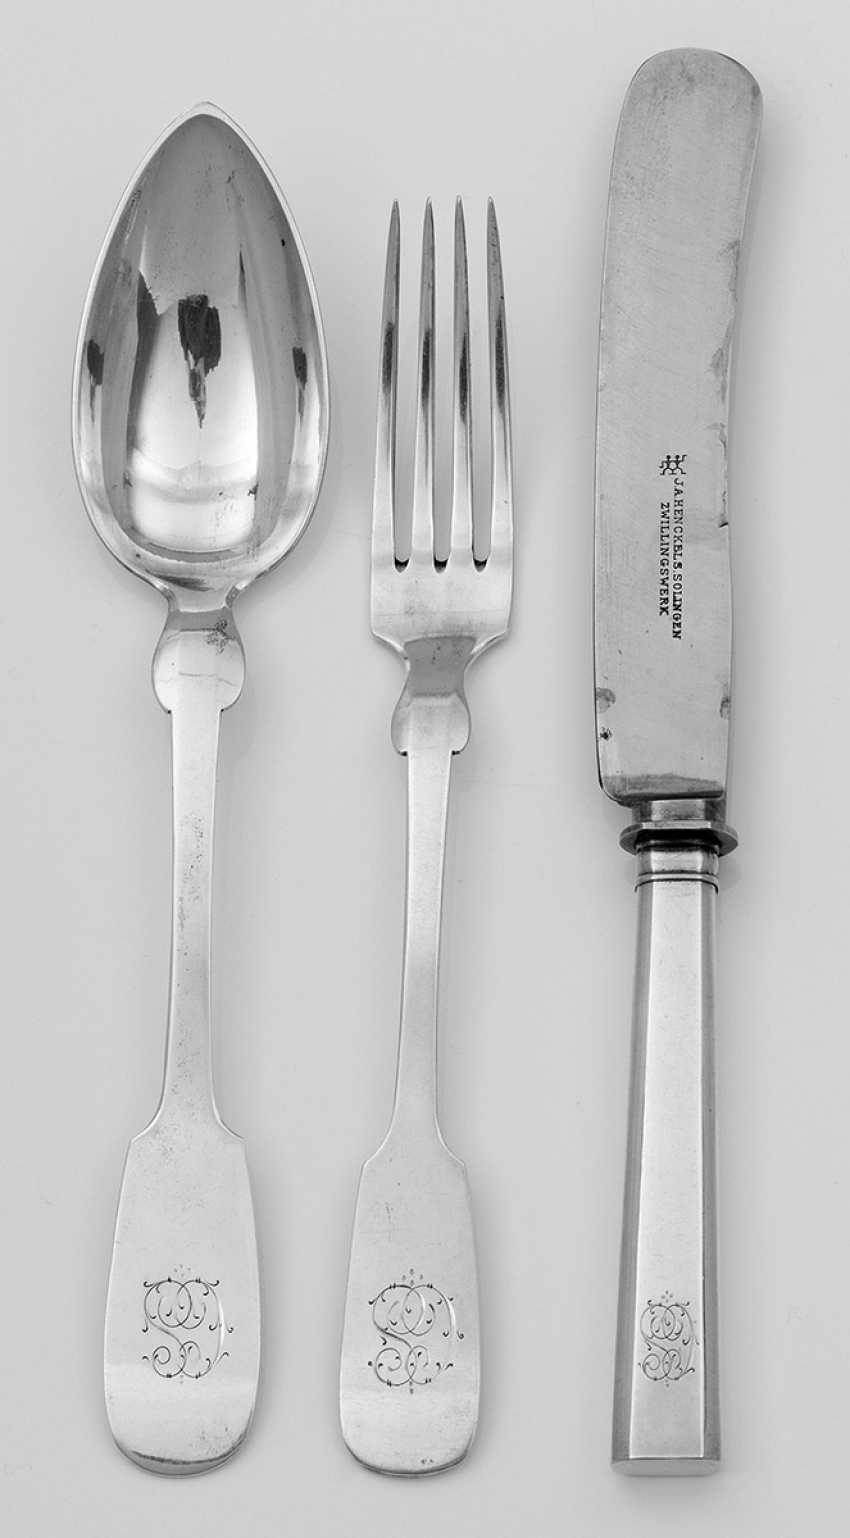 Dining Cutlery for 3 people - photo 1